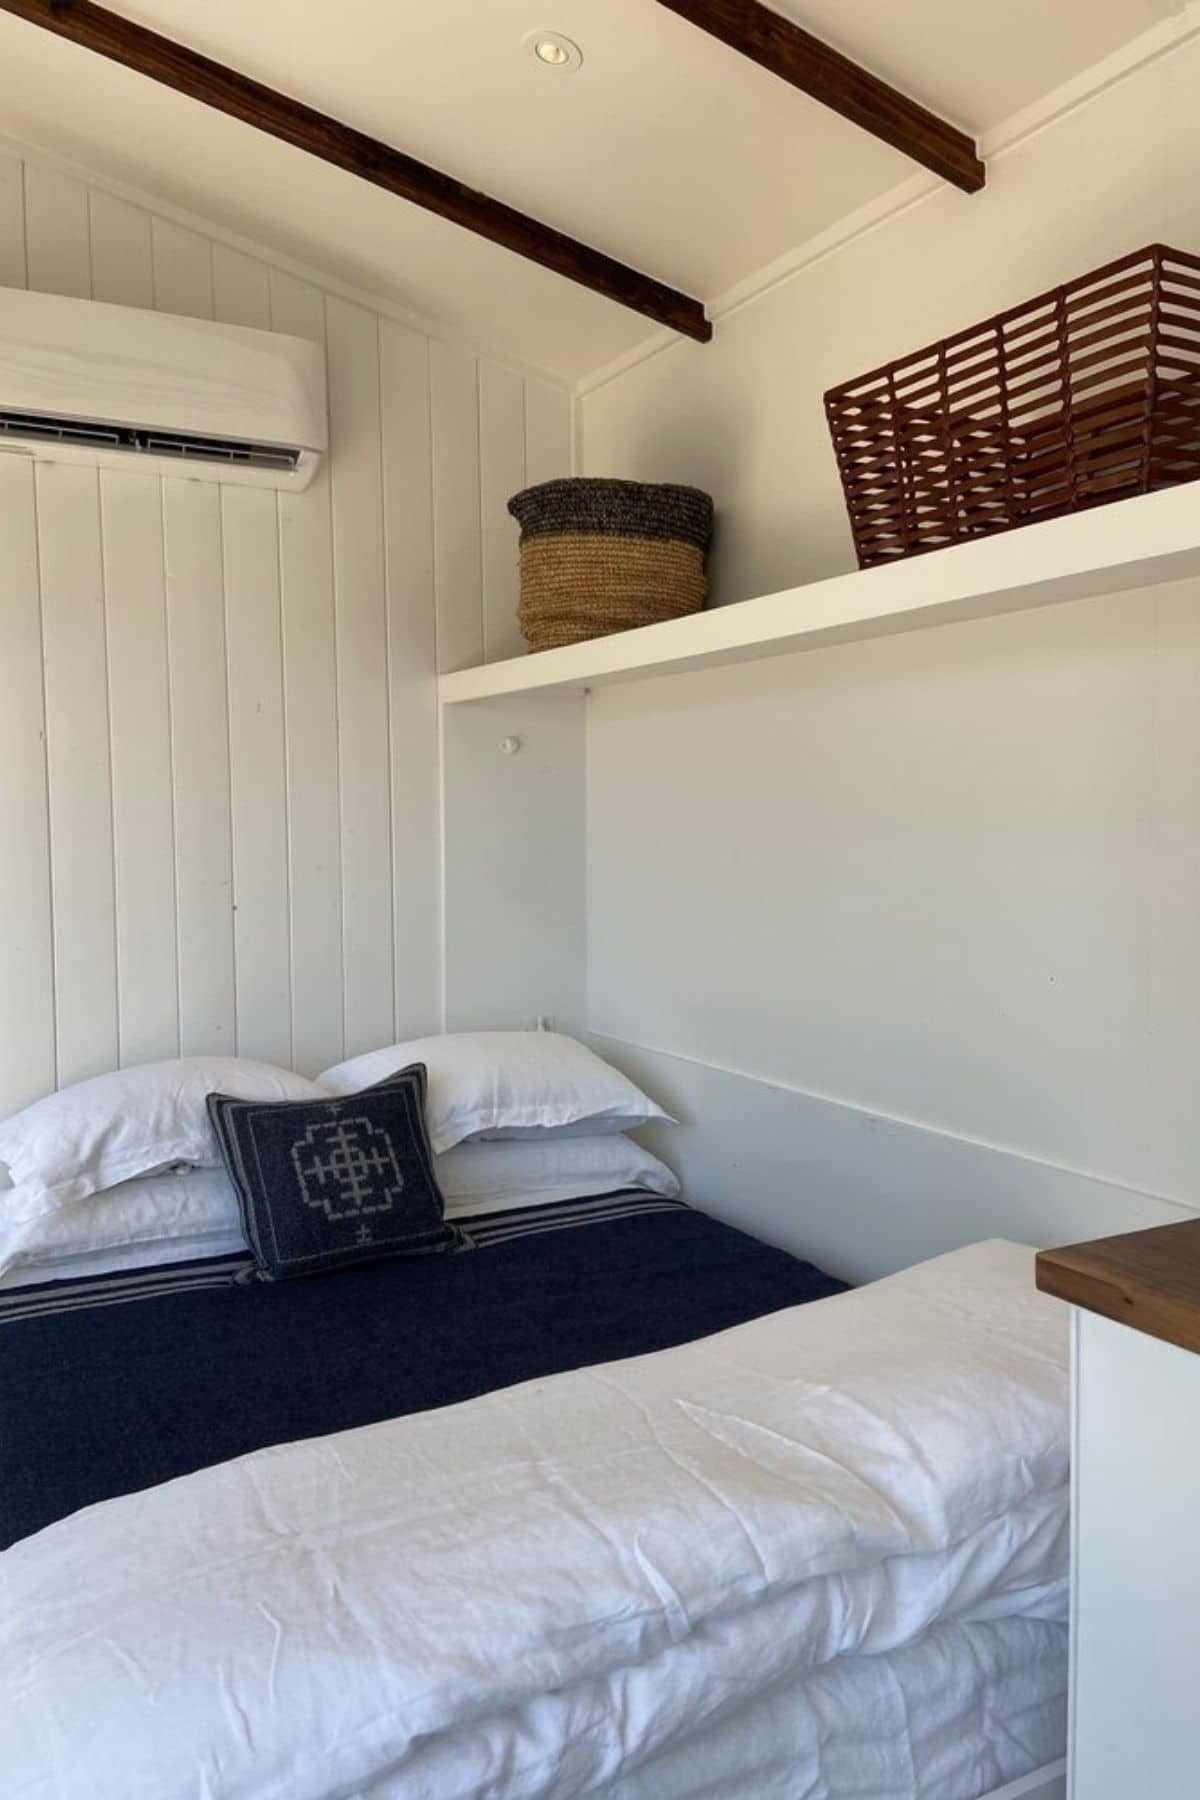 White murphy bed against white shiplap wall with blue blanket